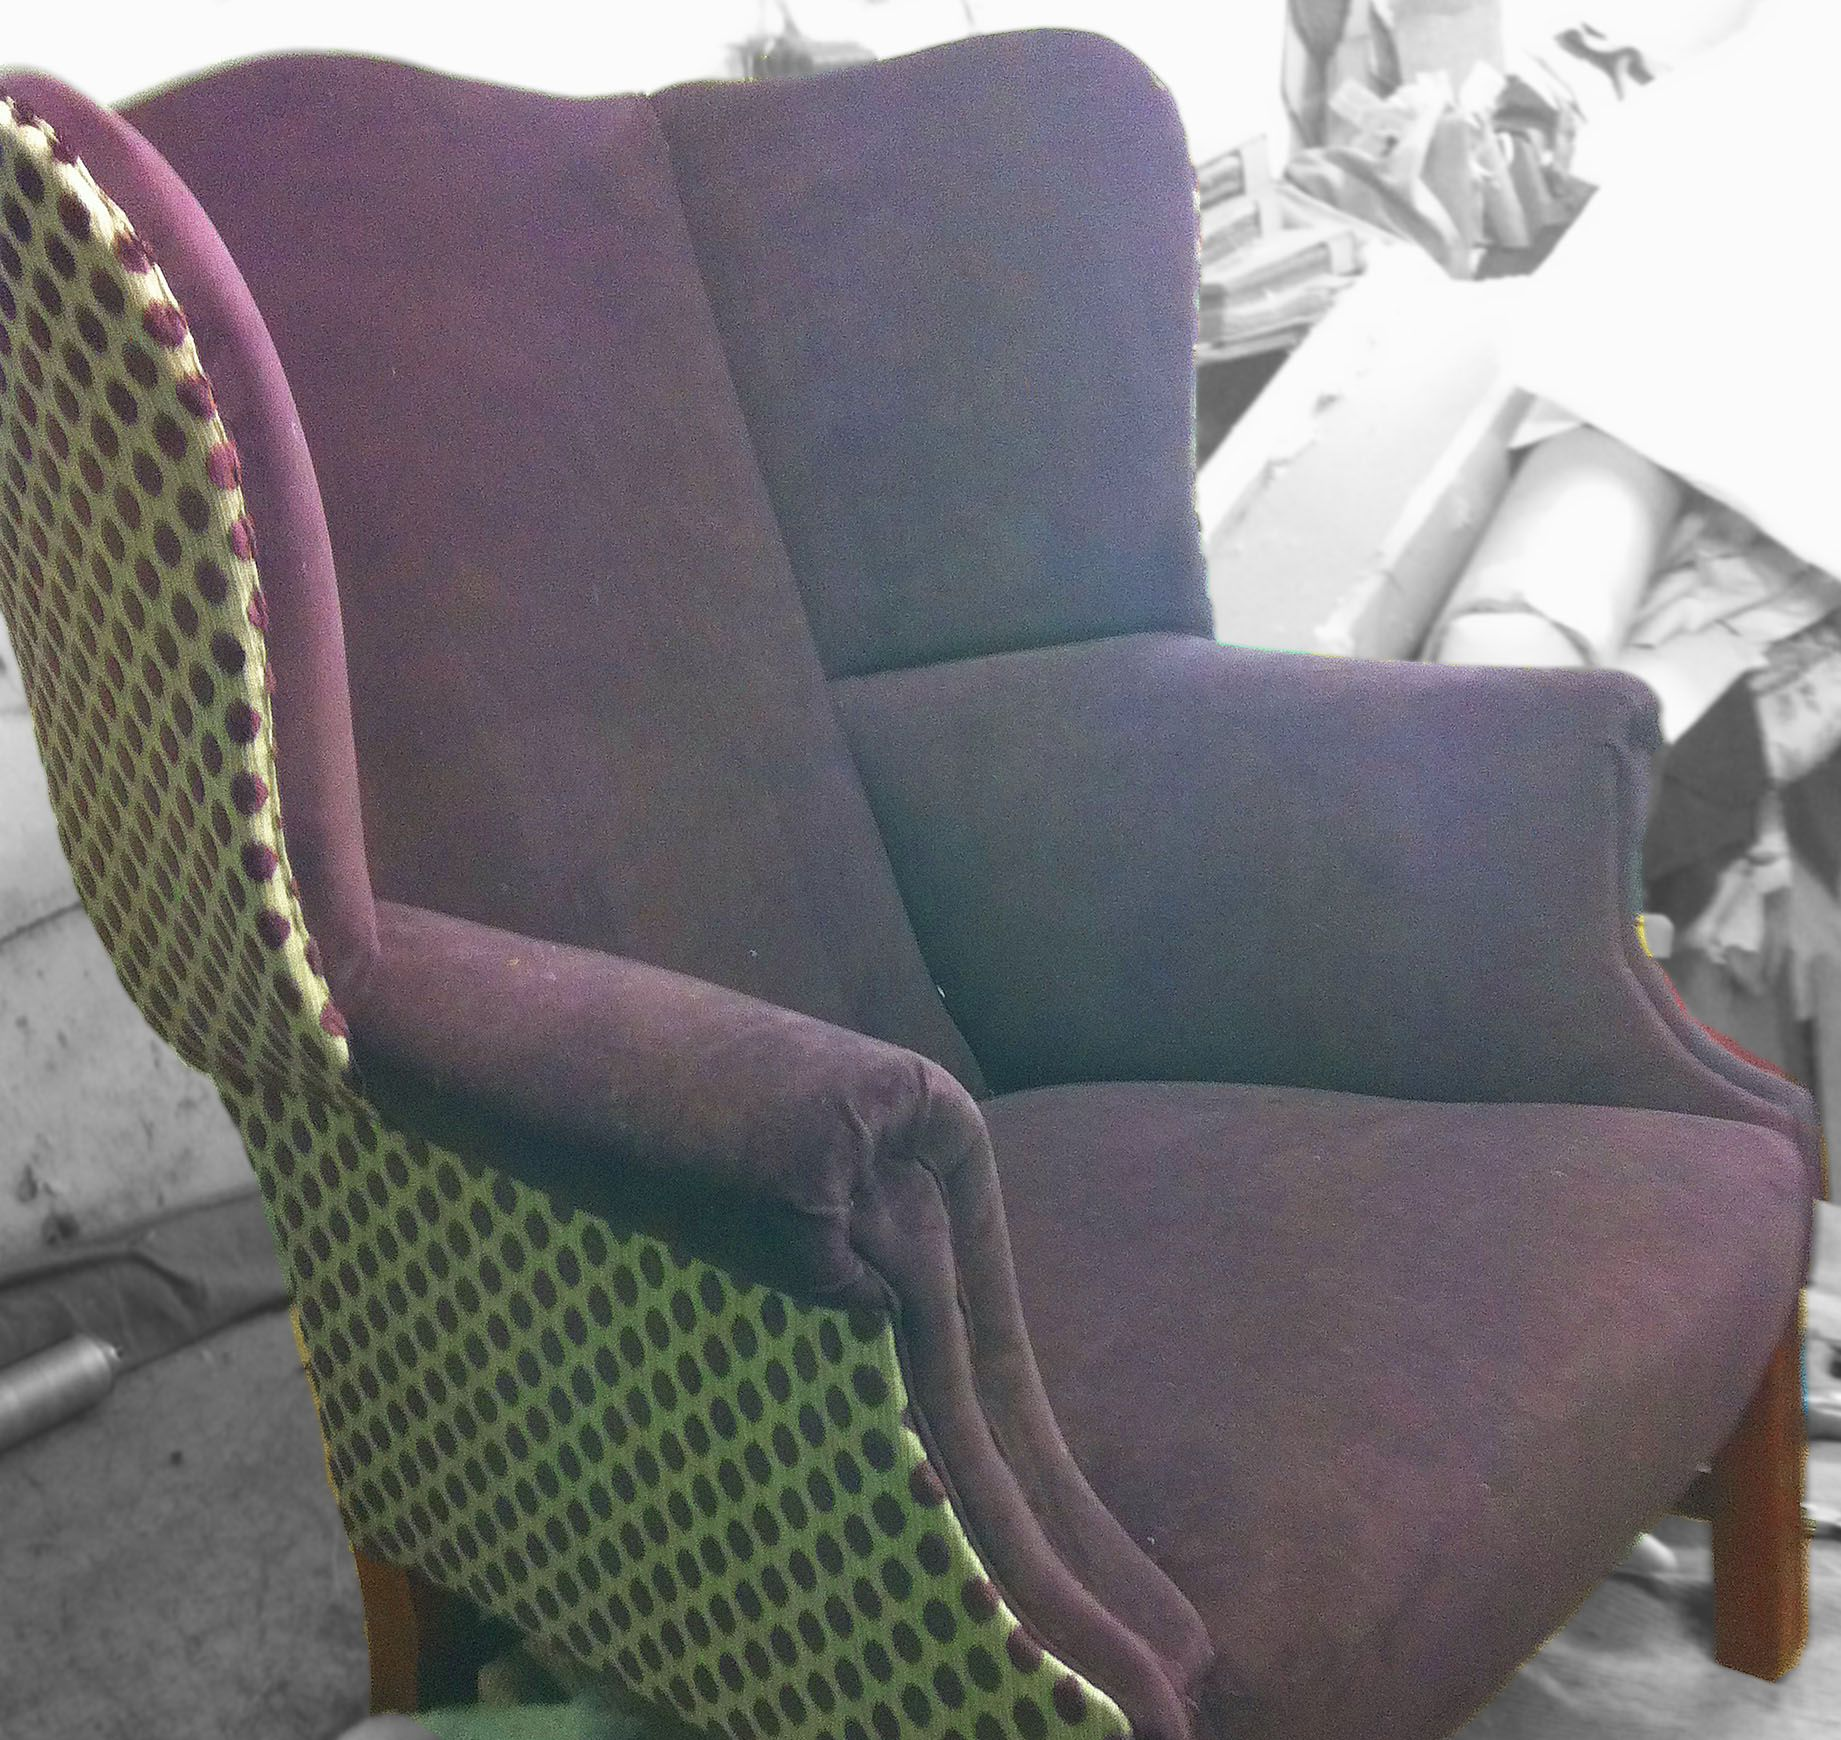 Winged armchair, purple velvet and green with purple polka ...